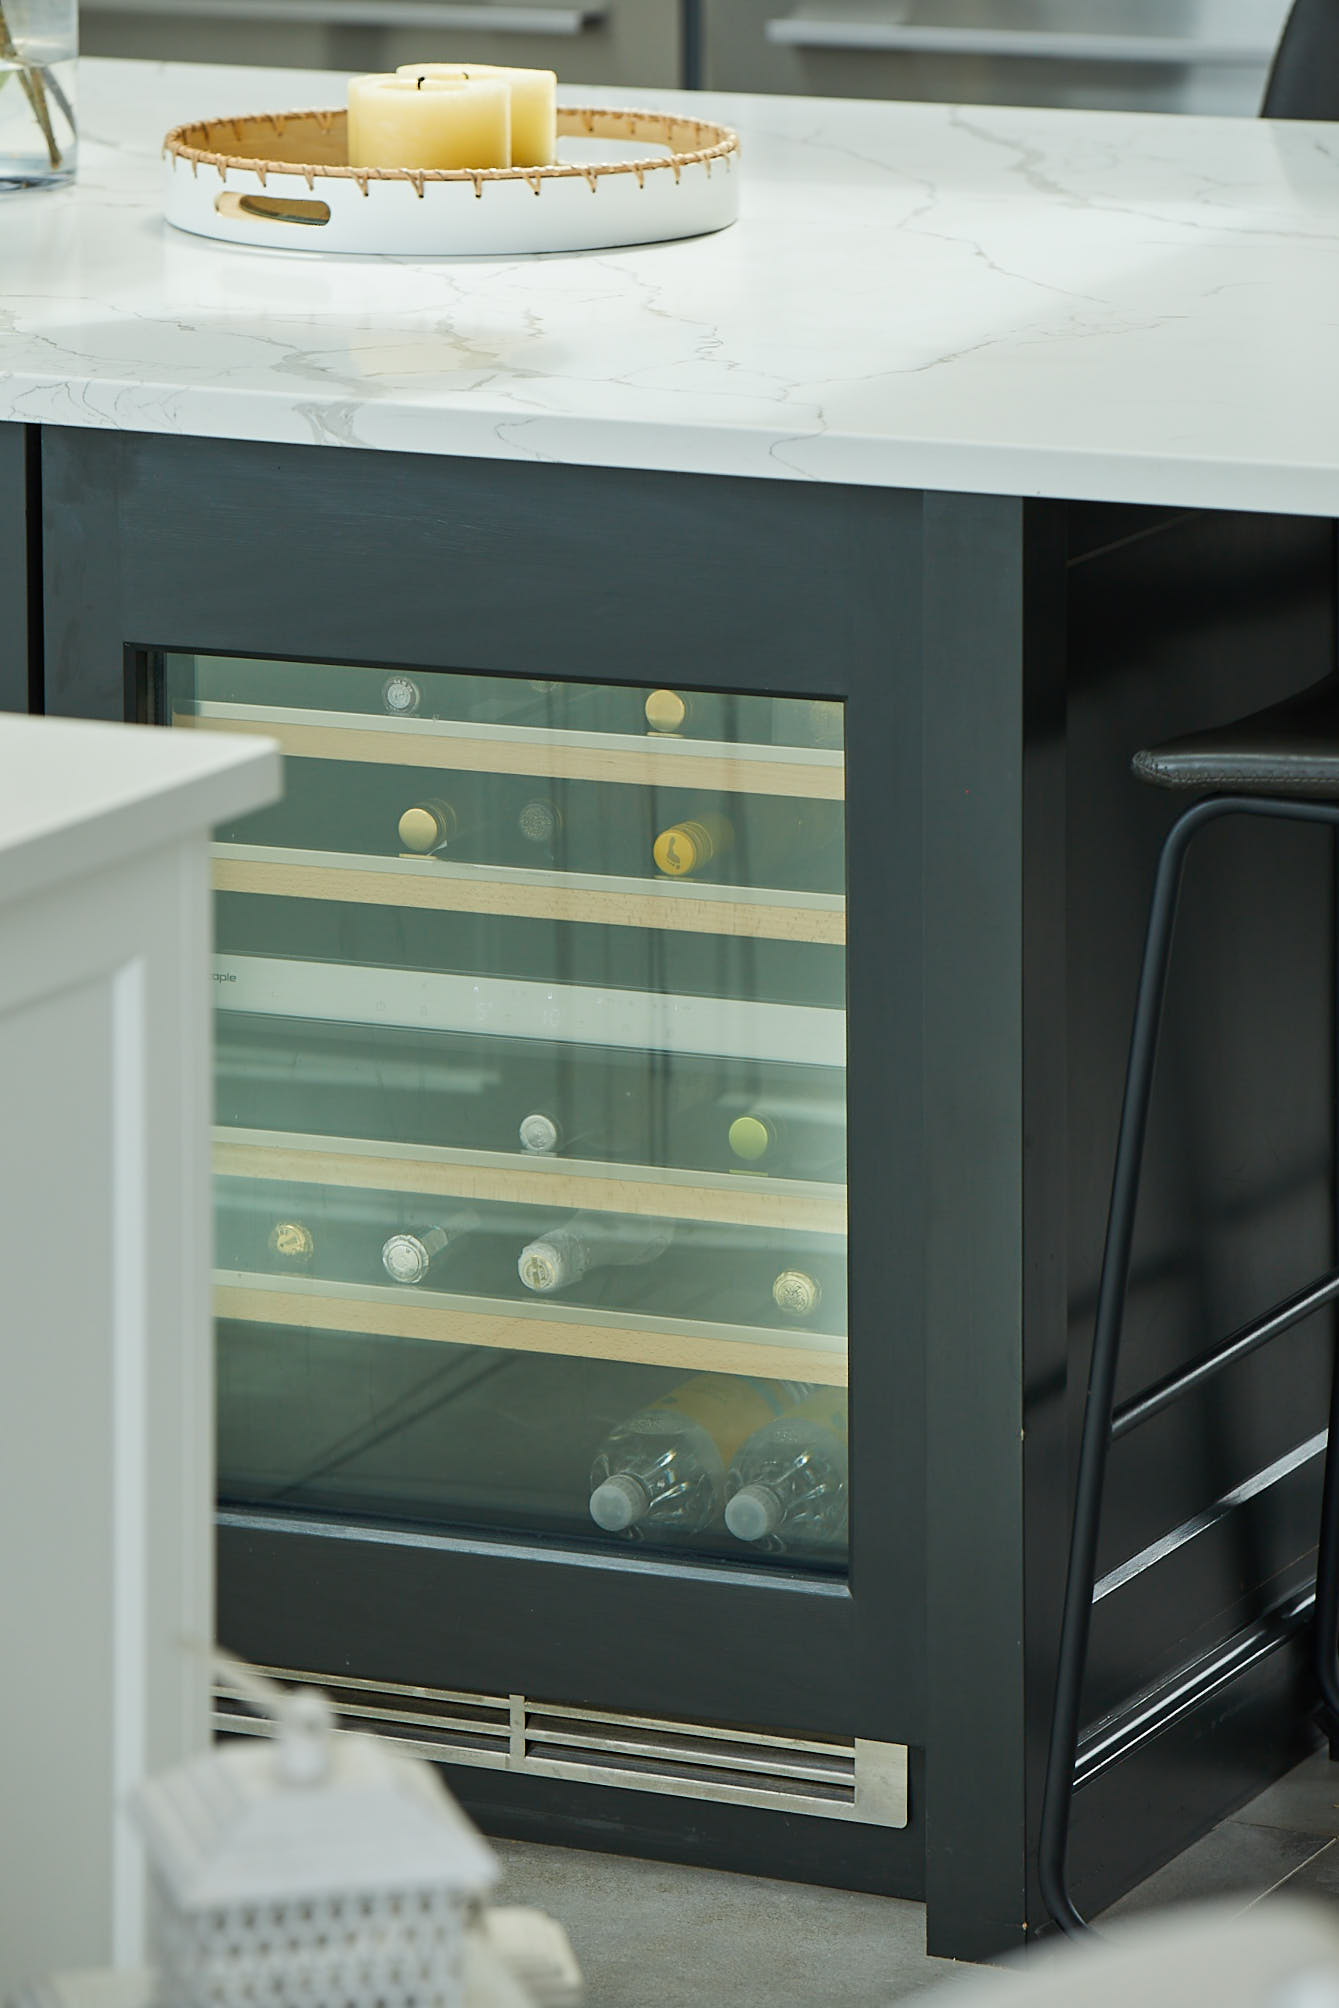 Integrated wine cooler in bespoke kitchen island